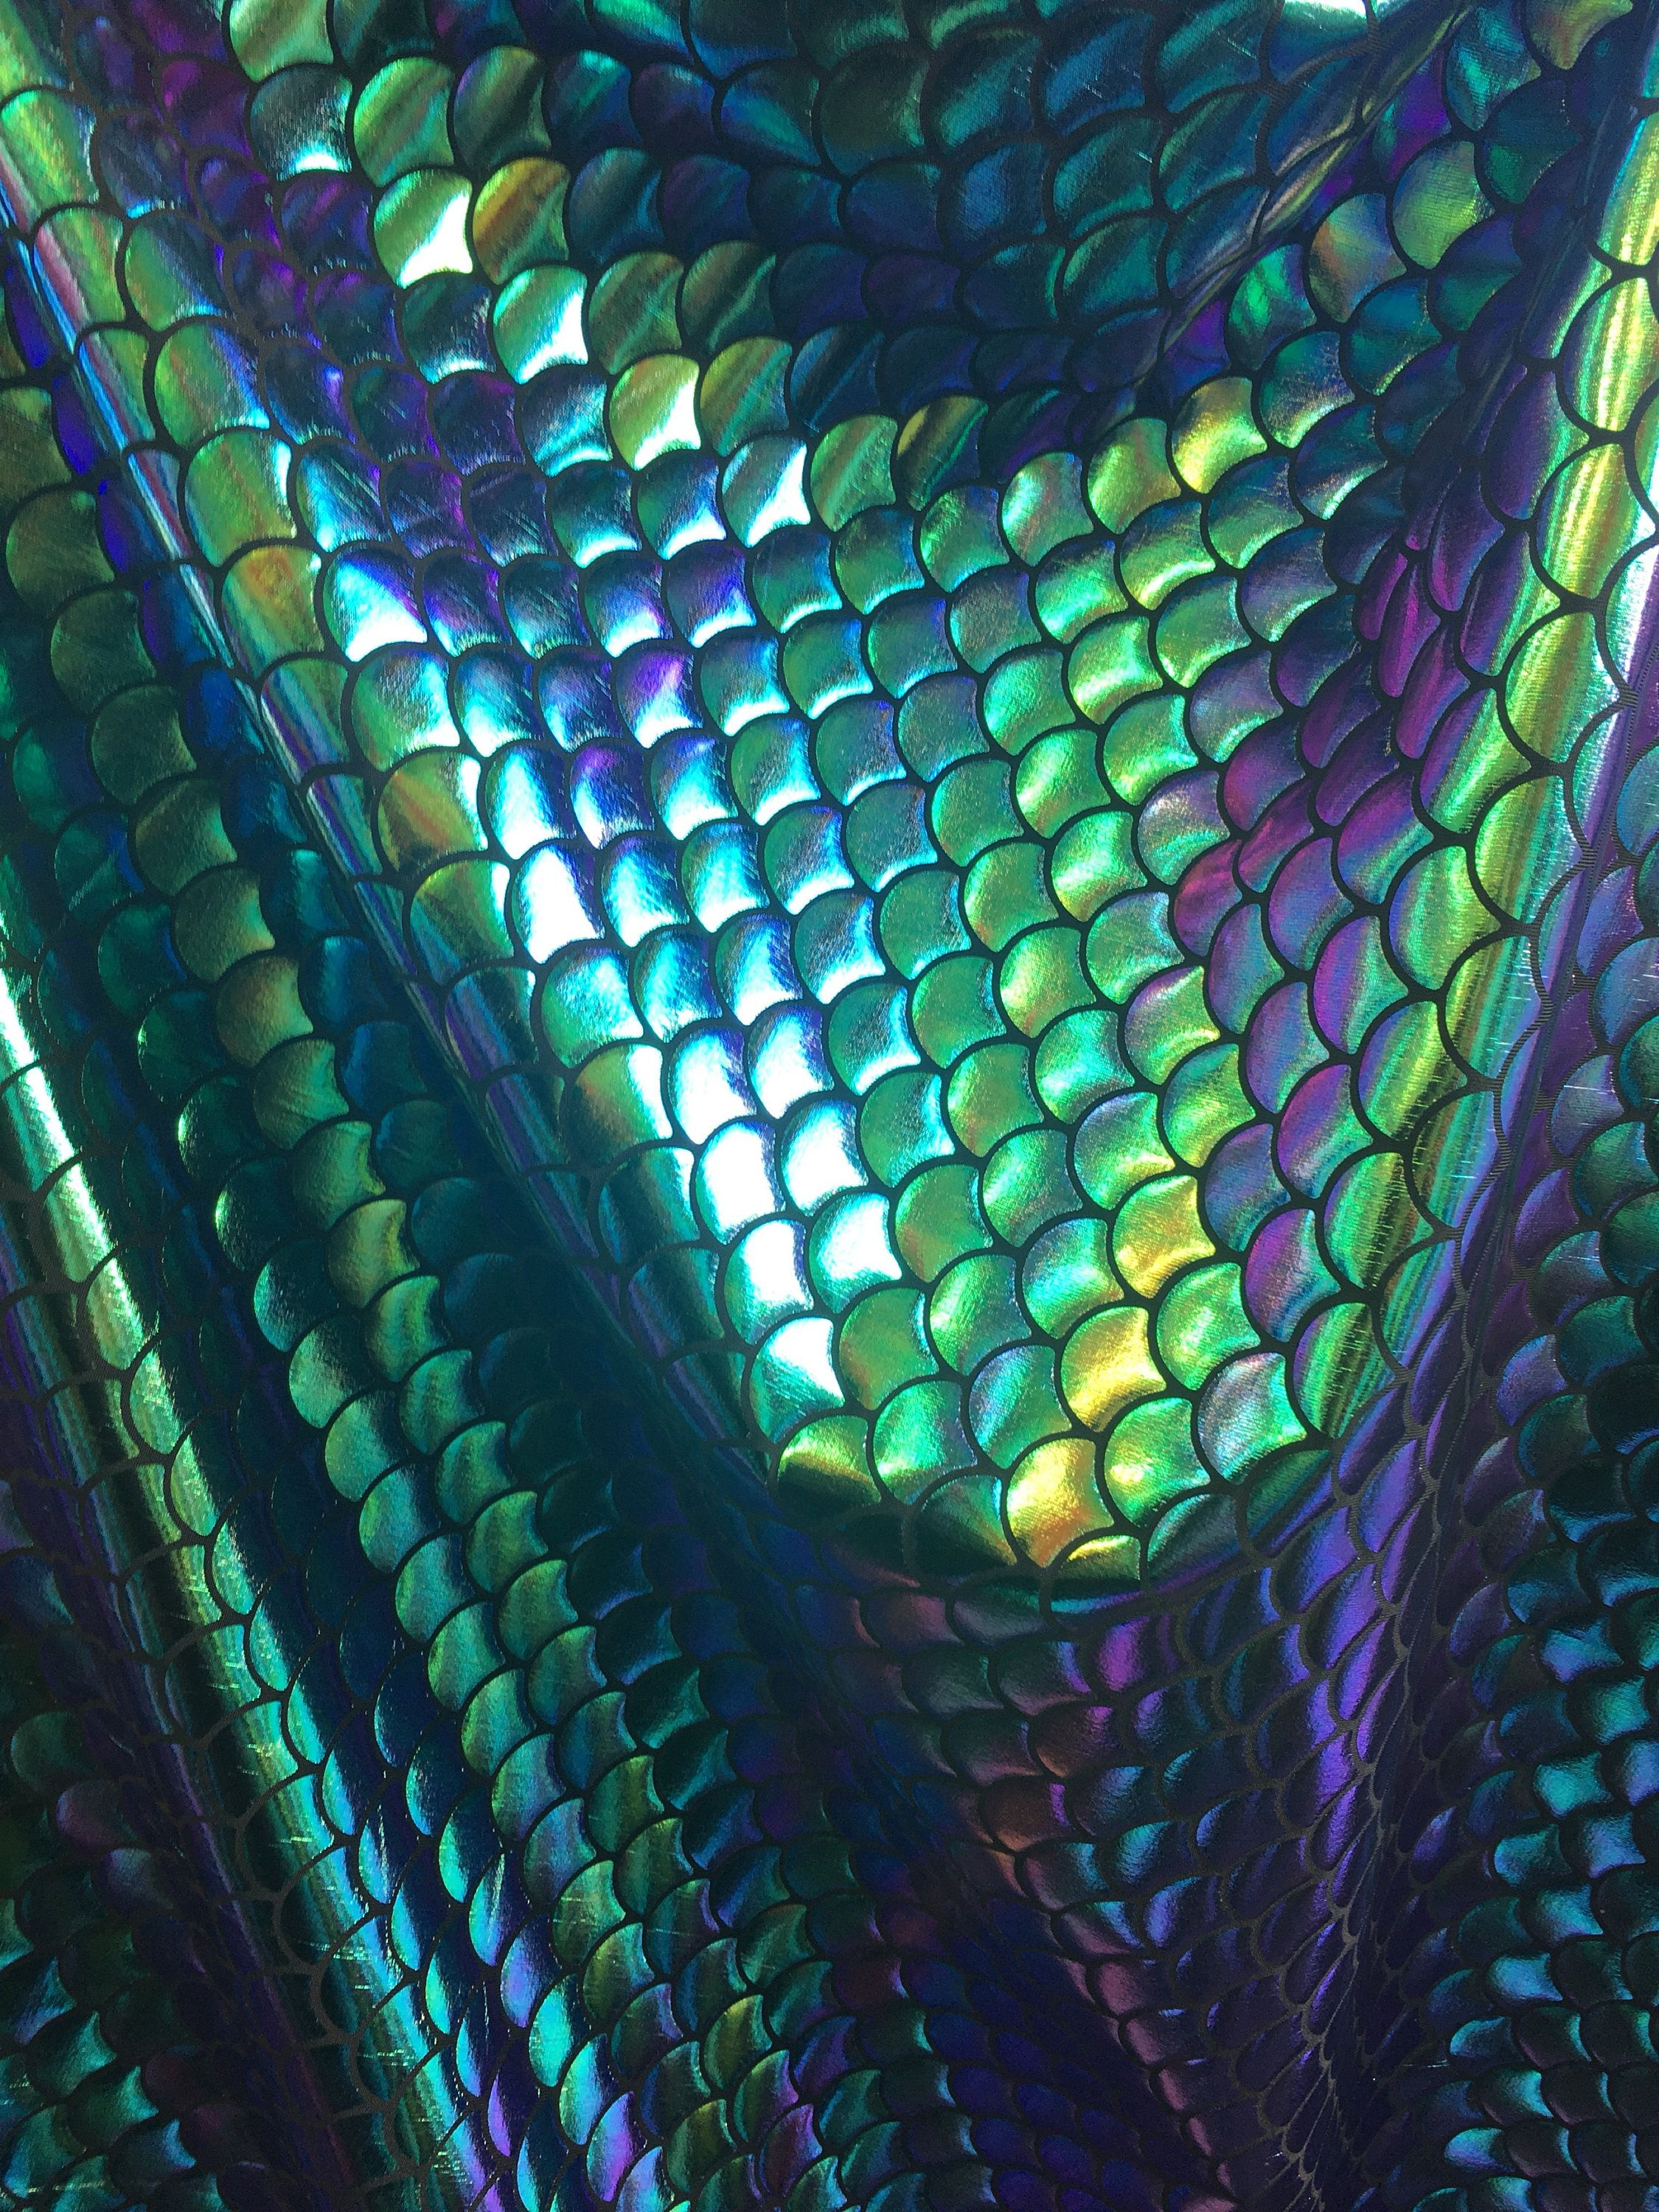 White Mermaid Scale Iridescent 4-way Stretch Spandex Fabric By The Yard 60/'/' Wide